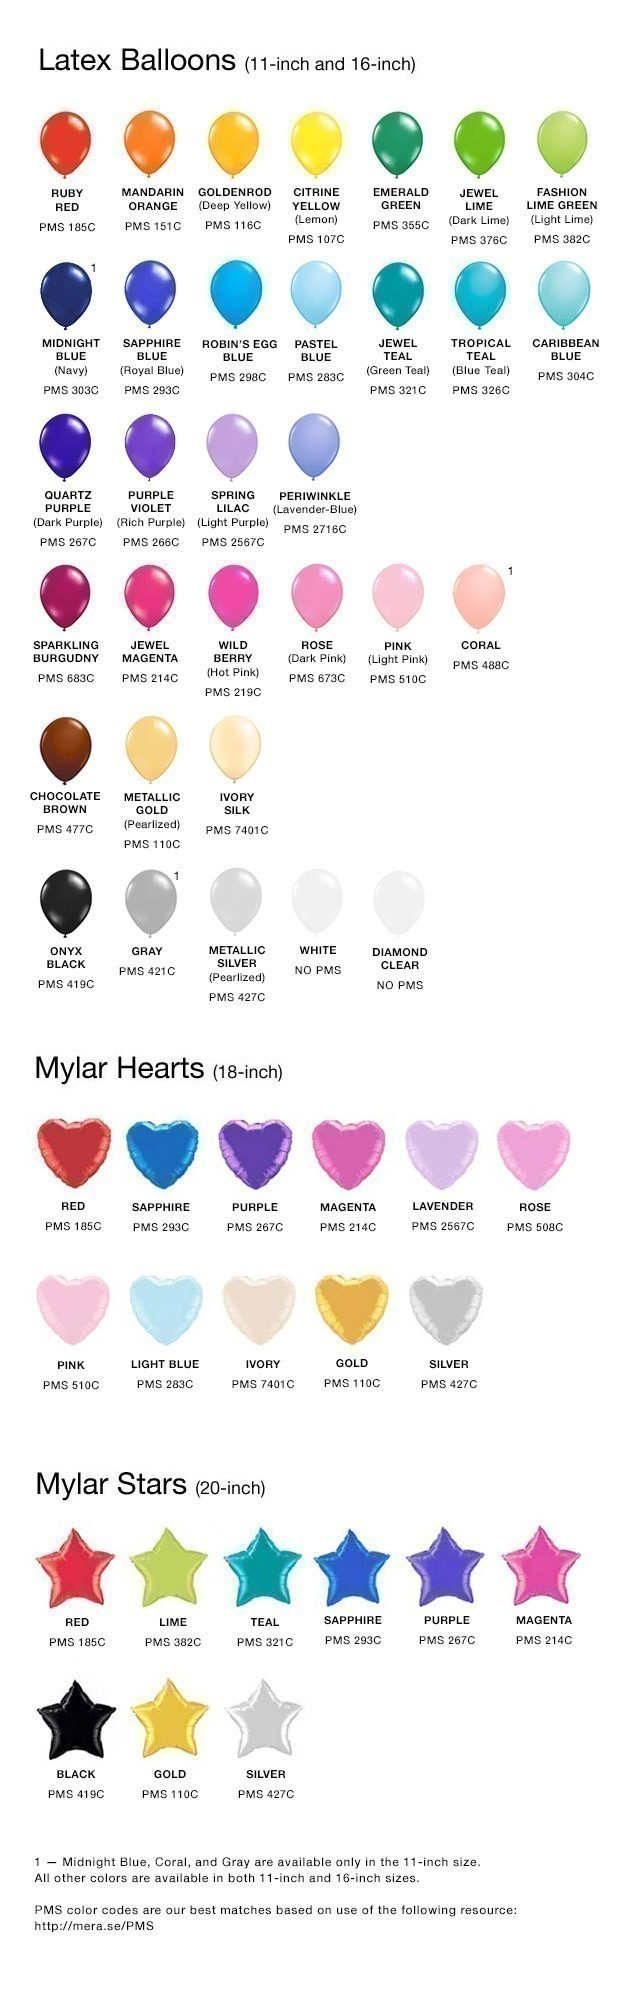 Balloon bouquet delivery balloon decorating 866 340 - Ink Colors For Orders Of 100 Balloons Ink Colors Are Limited To Black White Red Dark Blue No Change Of Ink Color Permitted